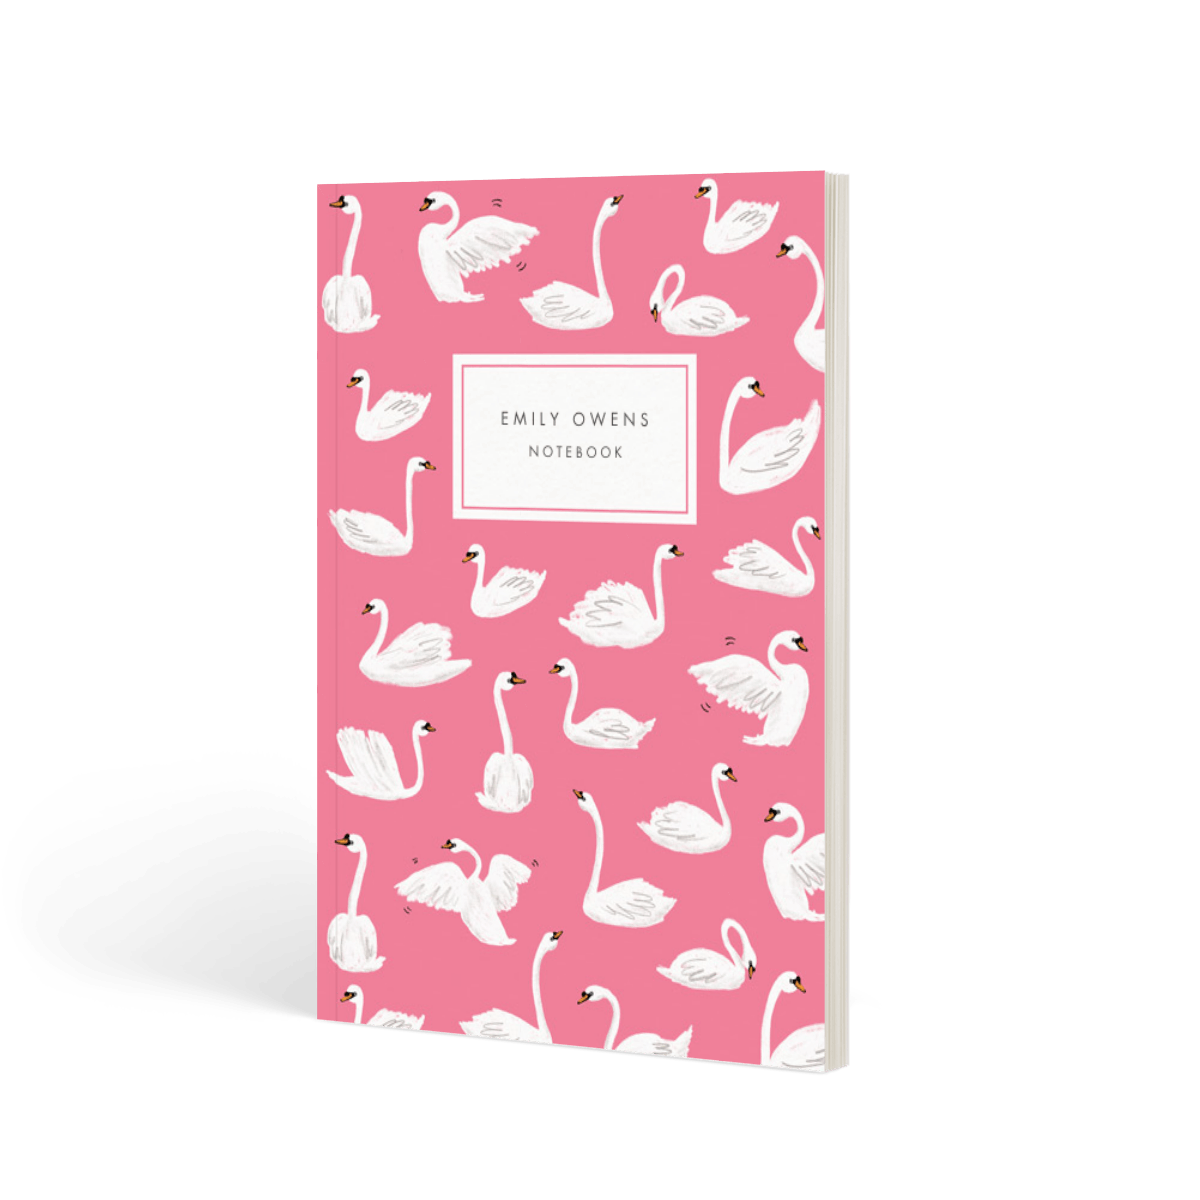 Https%3a%2f%2fwww.papier.com%2fproduct image%2f37707%2f6%2fpink swans 9505 front 1527696259.png?ixlib=rb 1.1